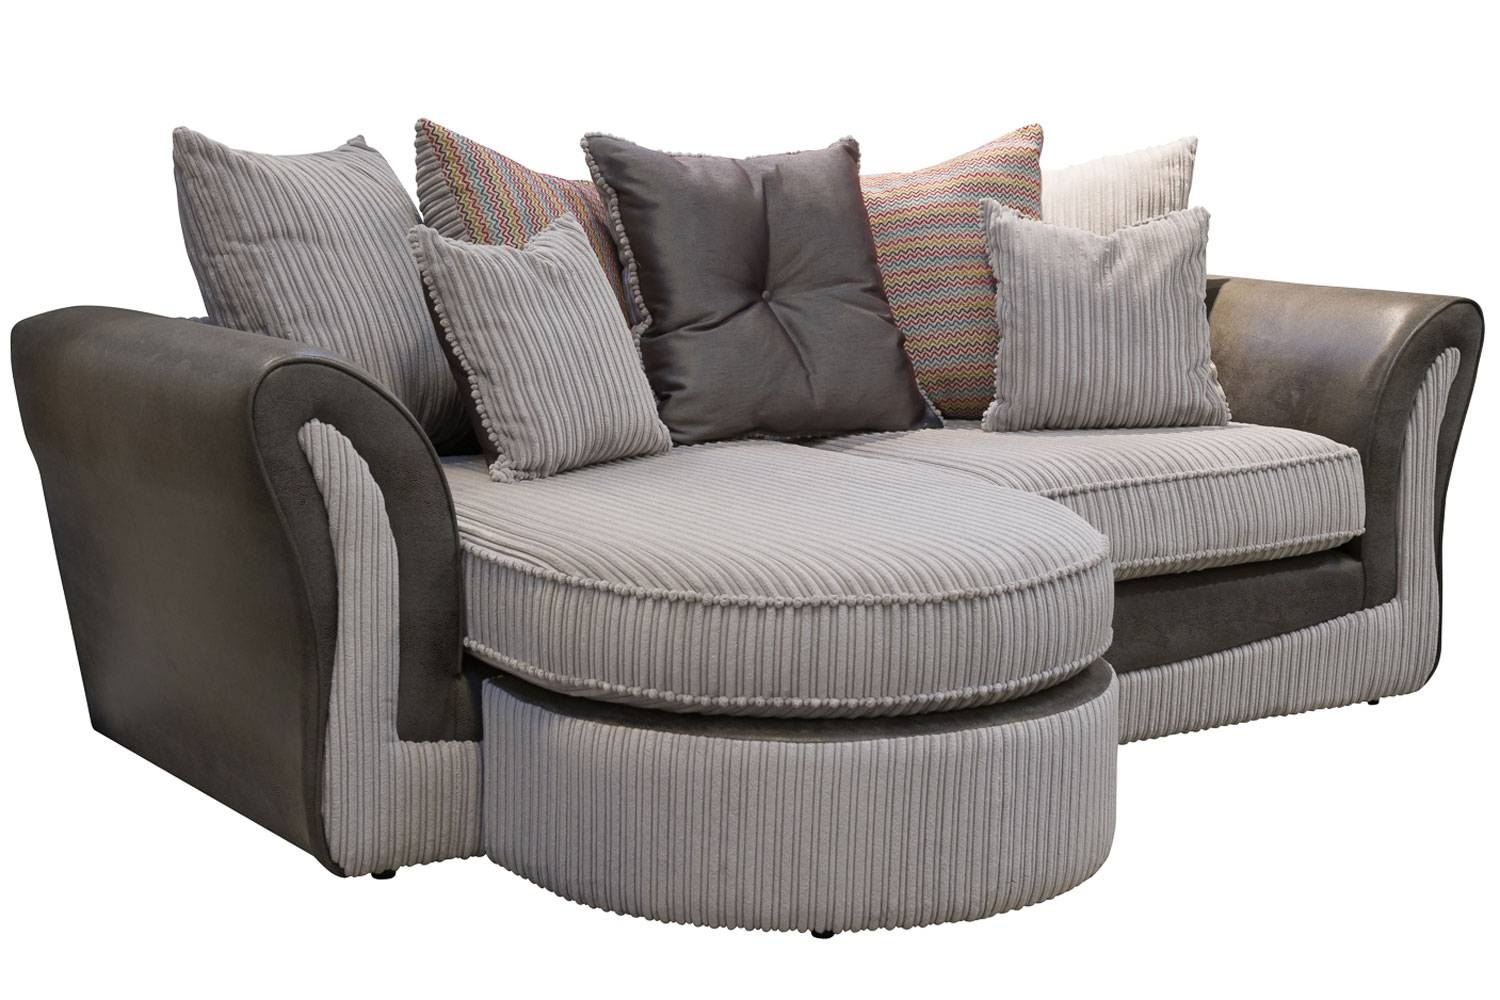 Harvey Corner Sofa – Leather Sectional Sofa Within Chintz Sofa Beds (View 13 of 30)